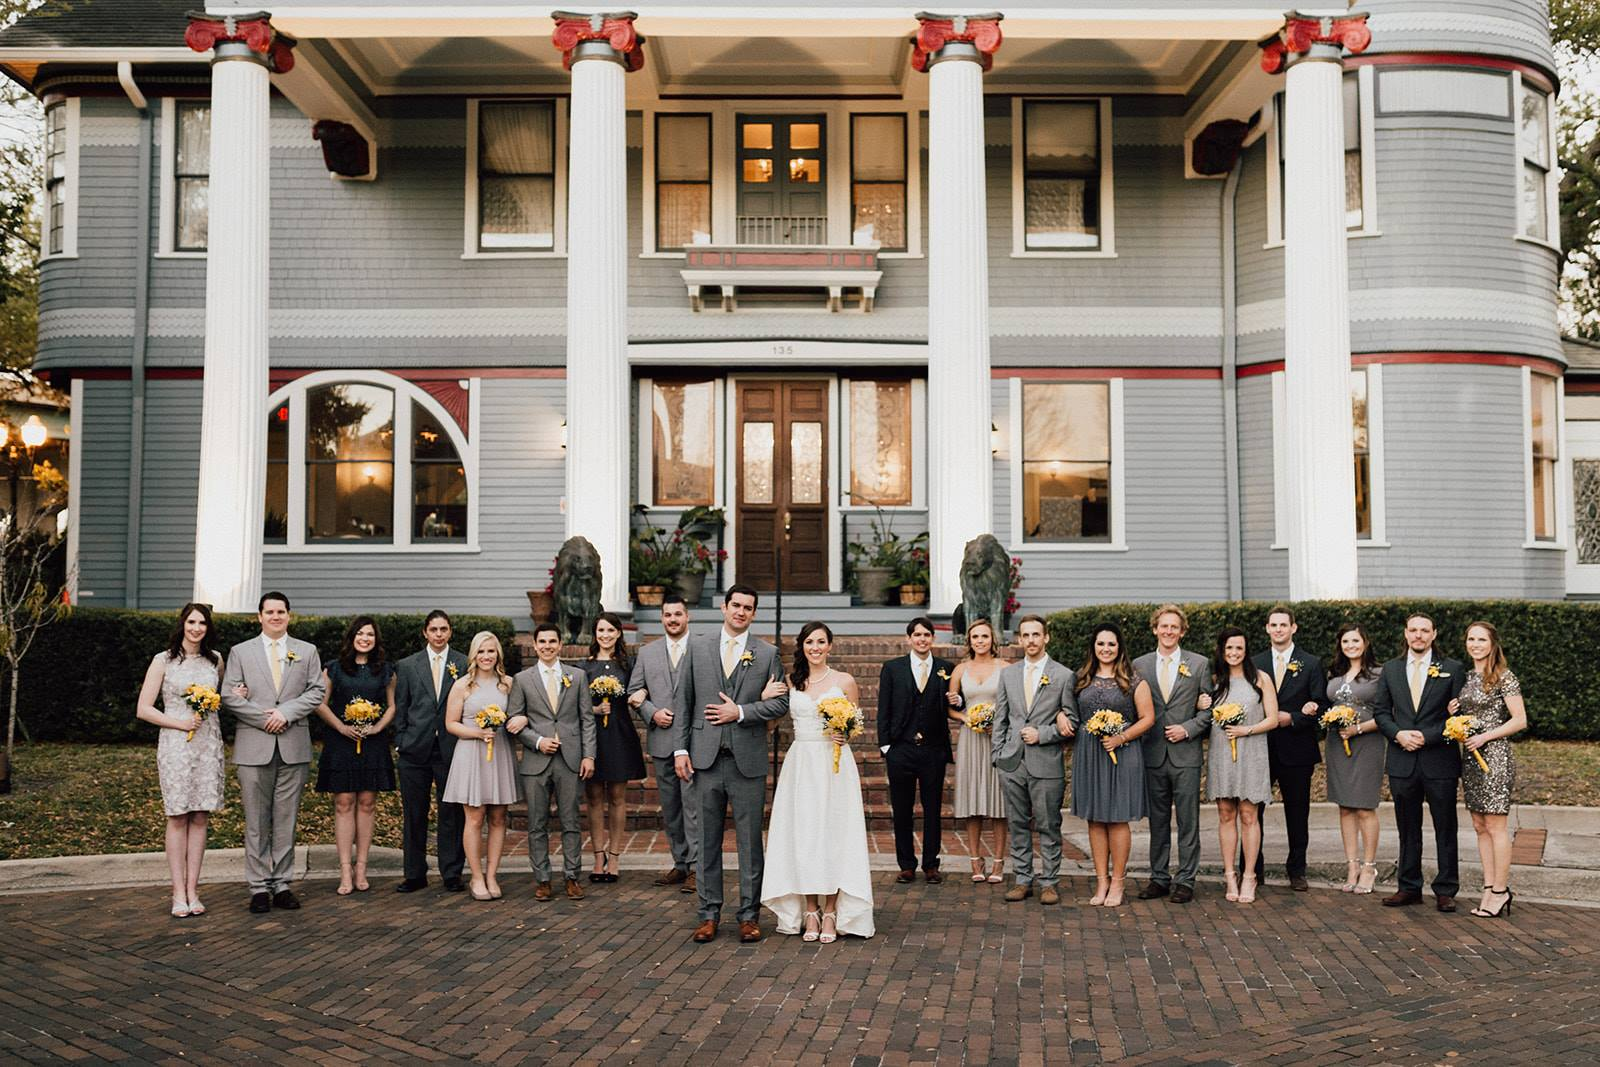 big wedding party on either side of bride and groom in front of big mansion with four tall white columns